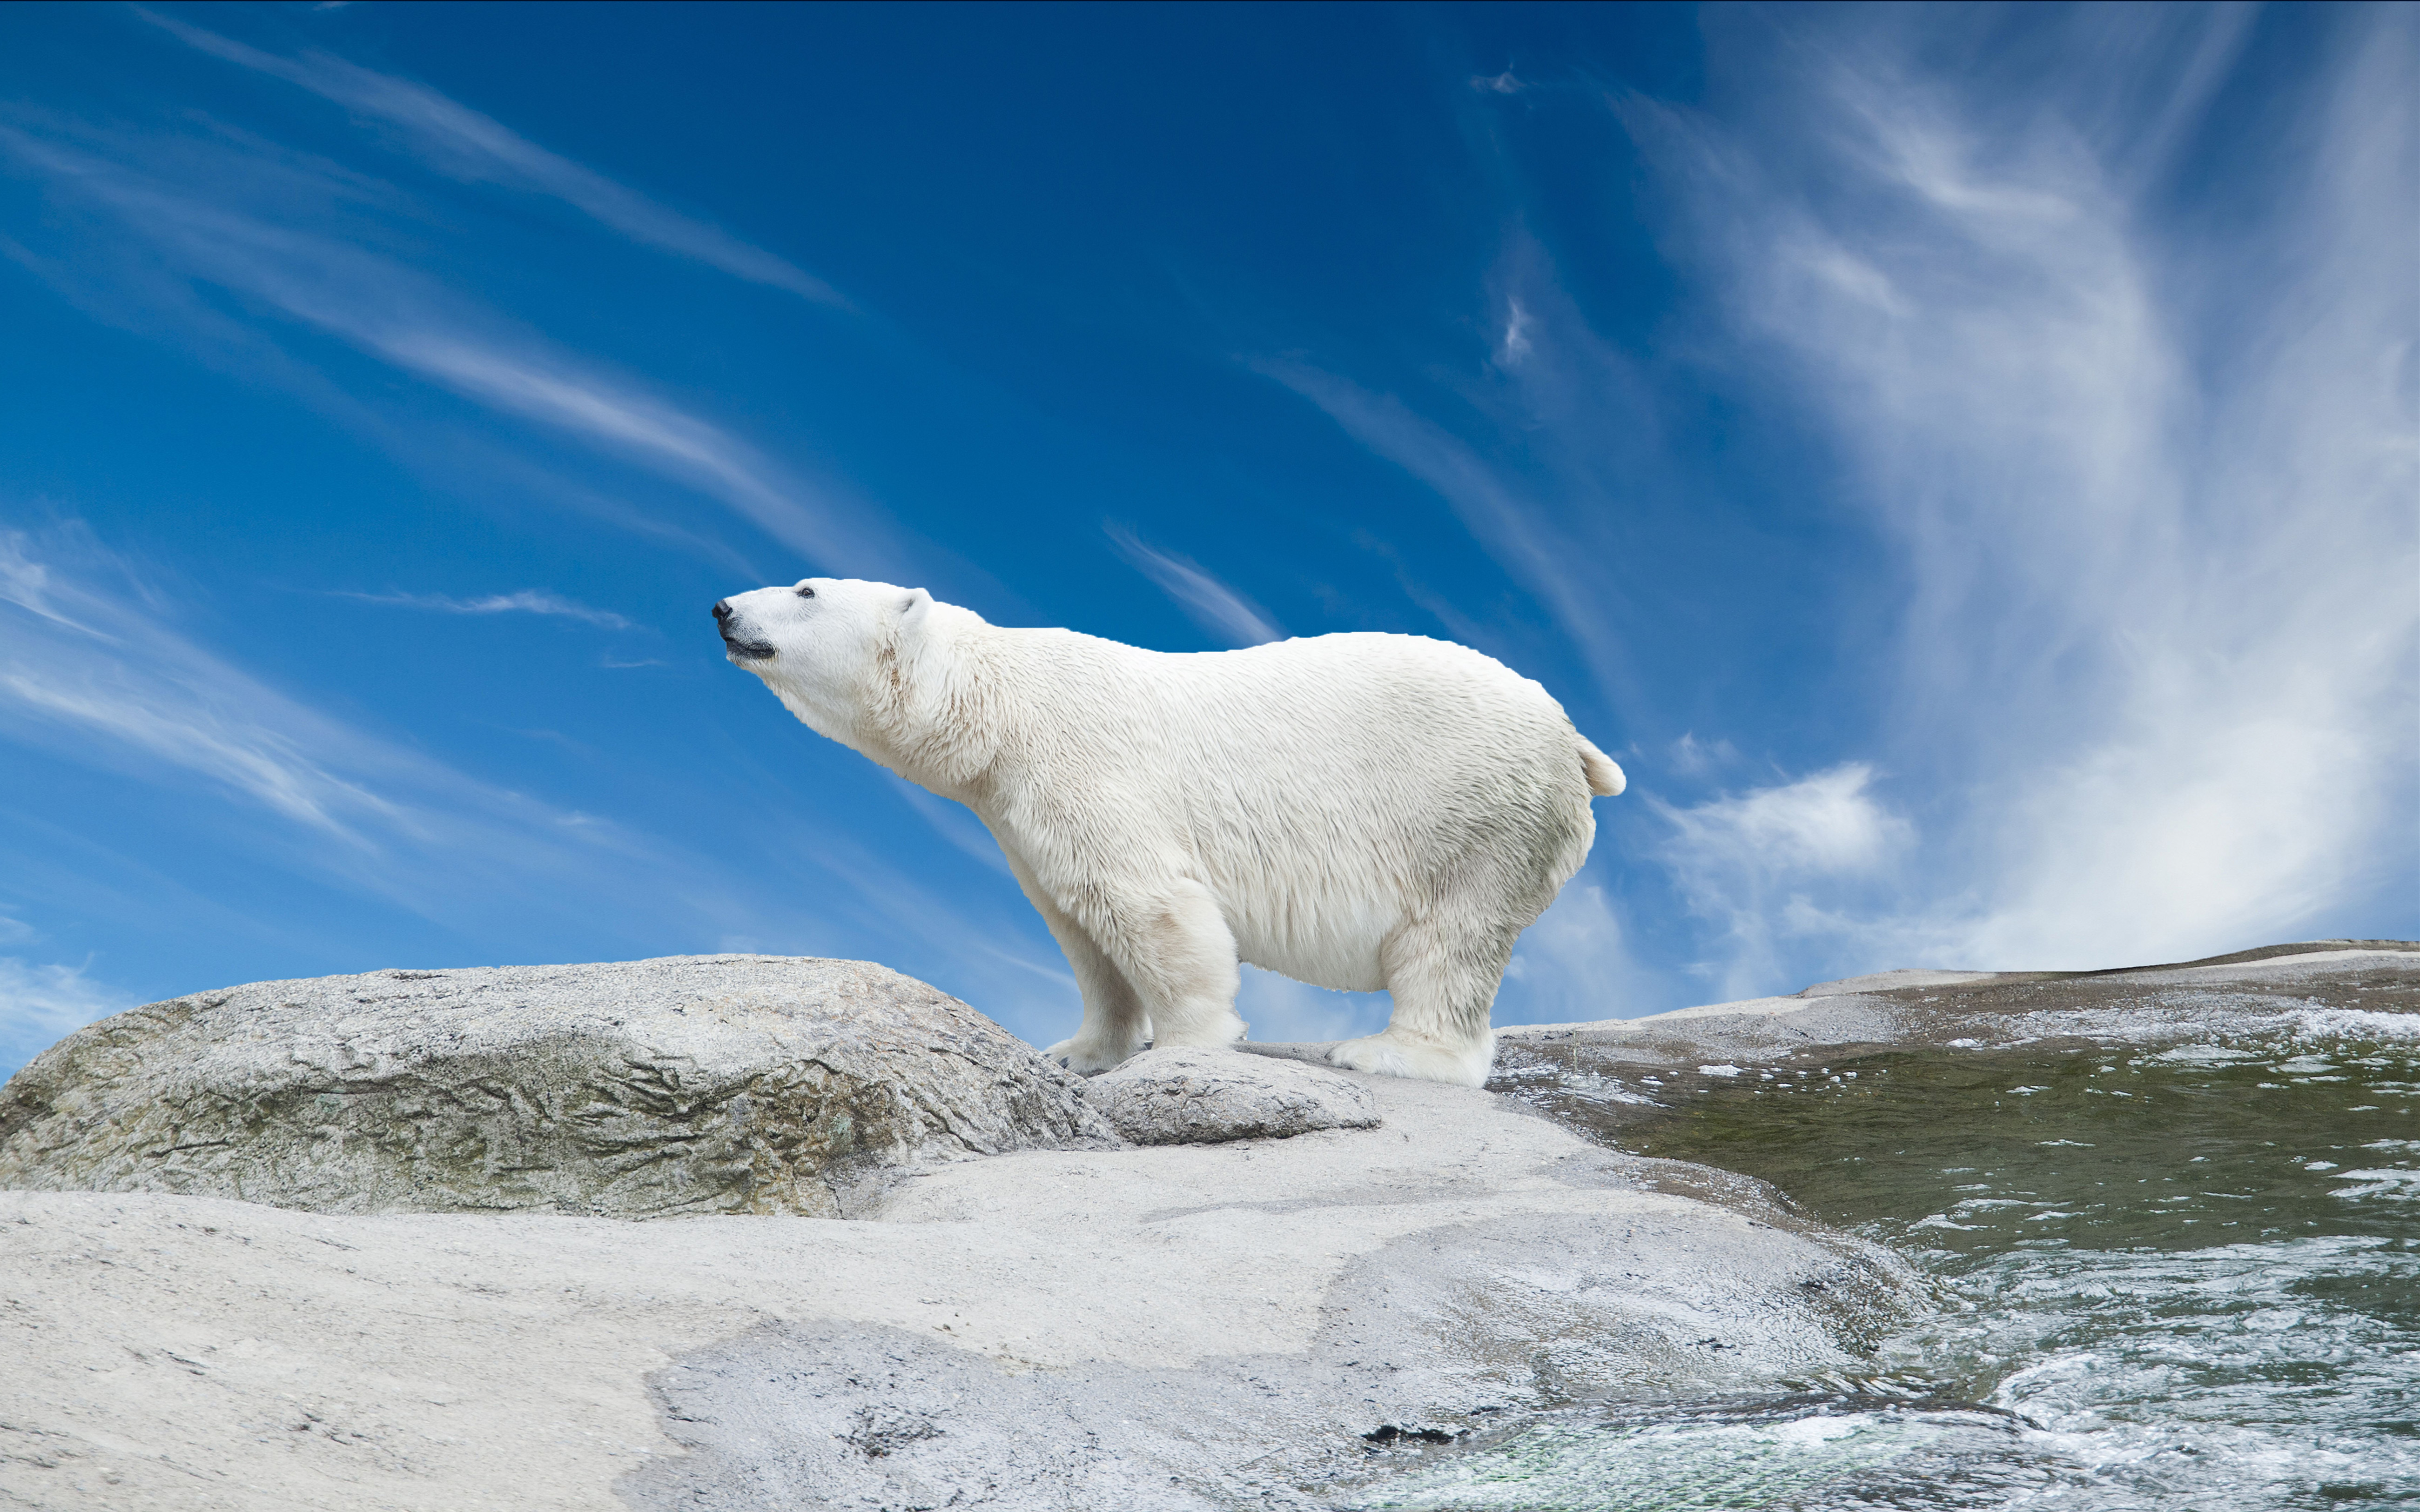 Beautiful Wild Animals Wallpapers The Polar Bear Has An Elongated Body Small Well Developed